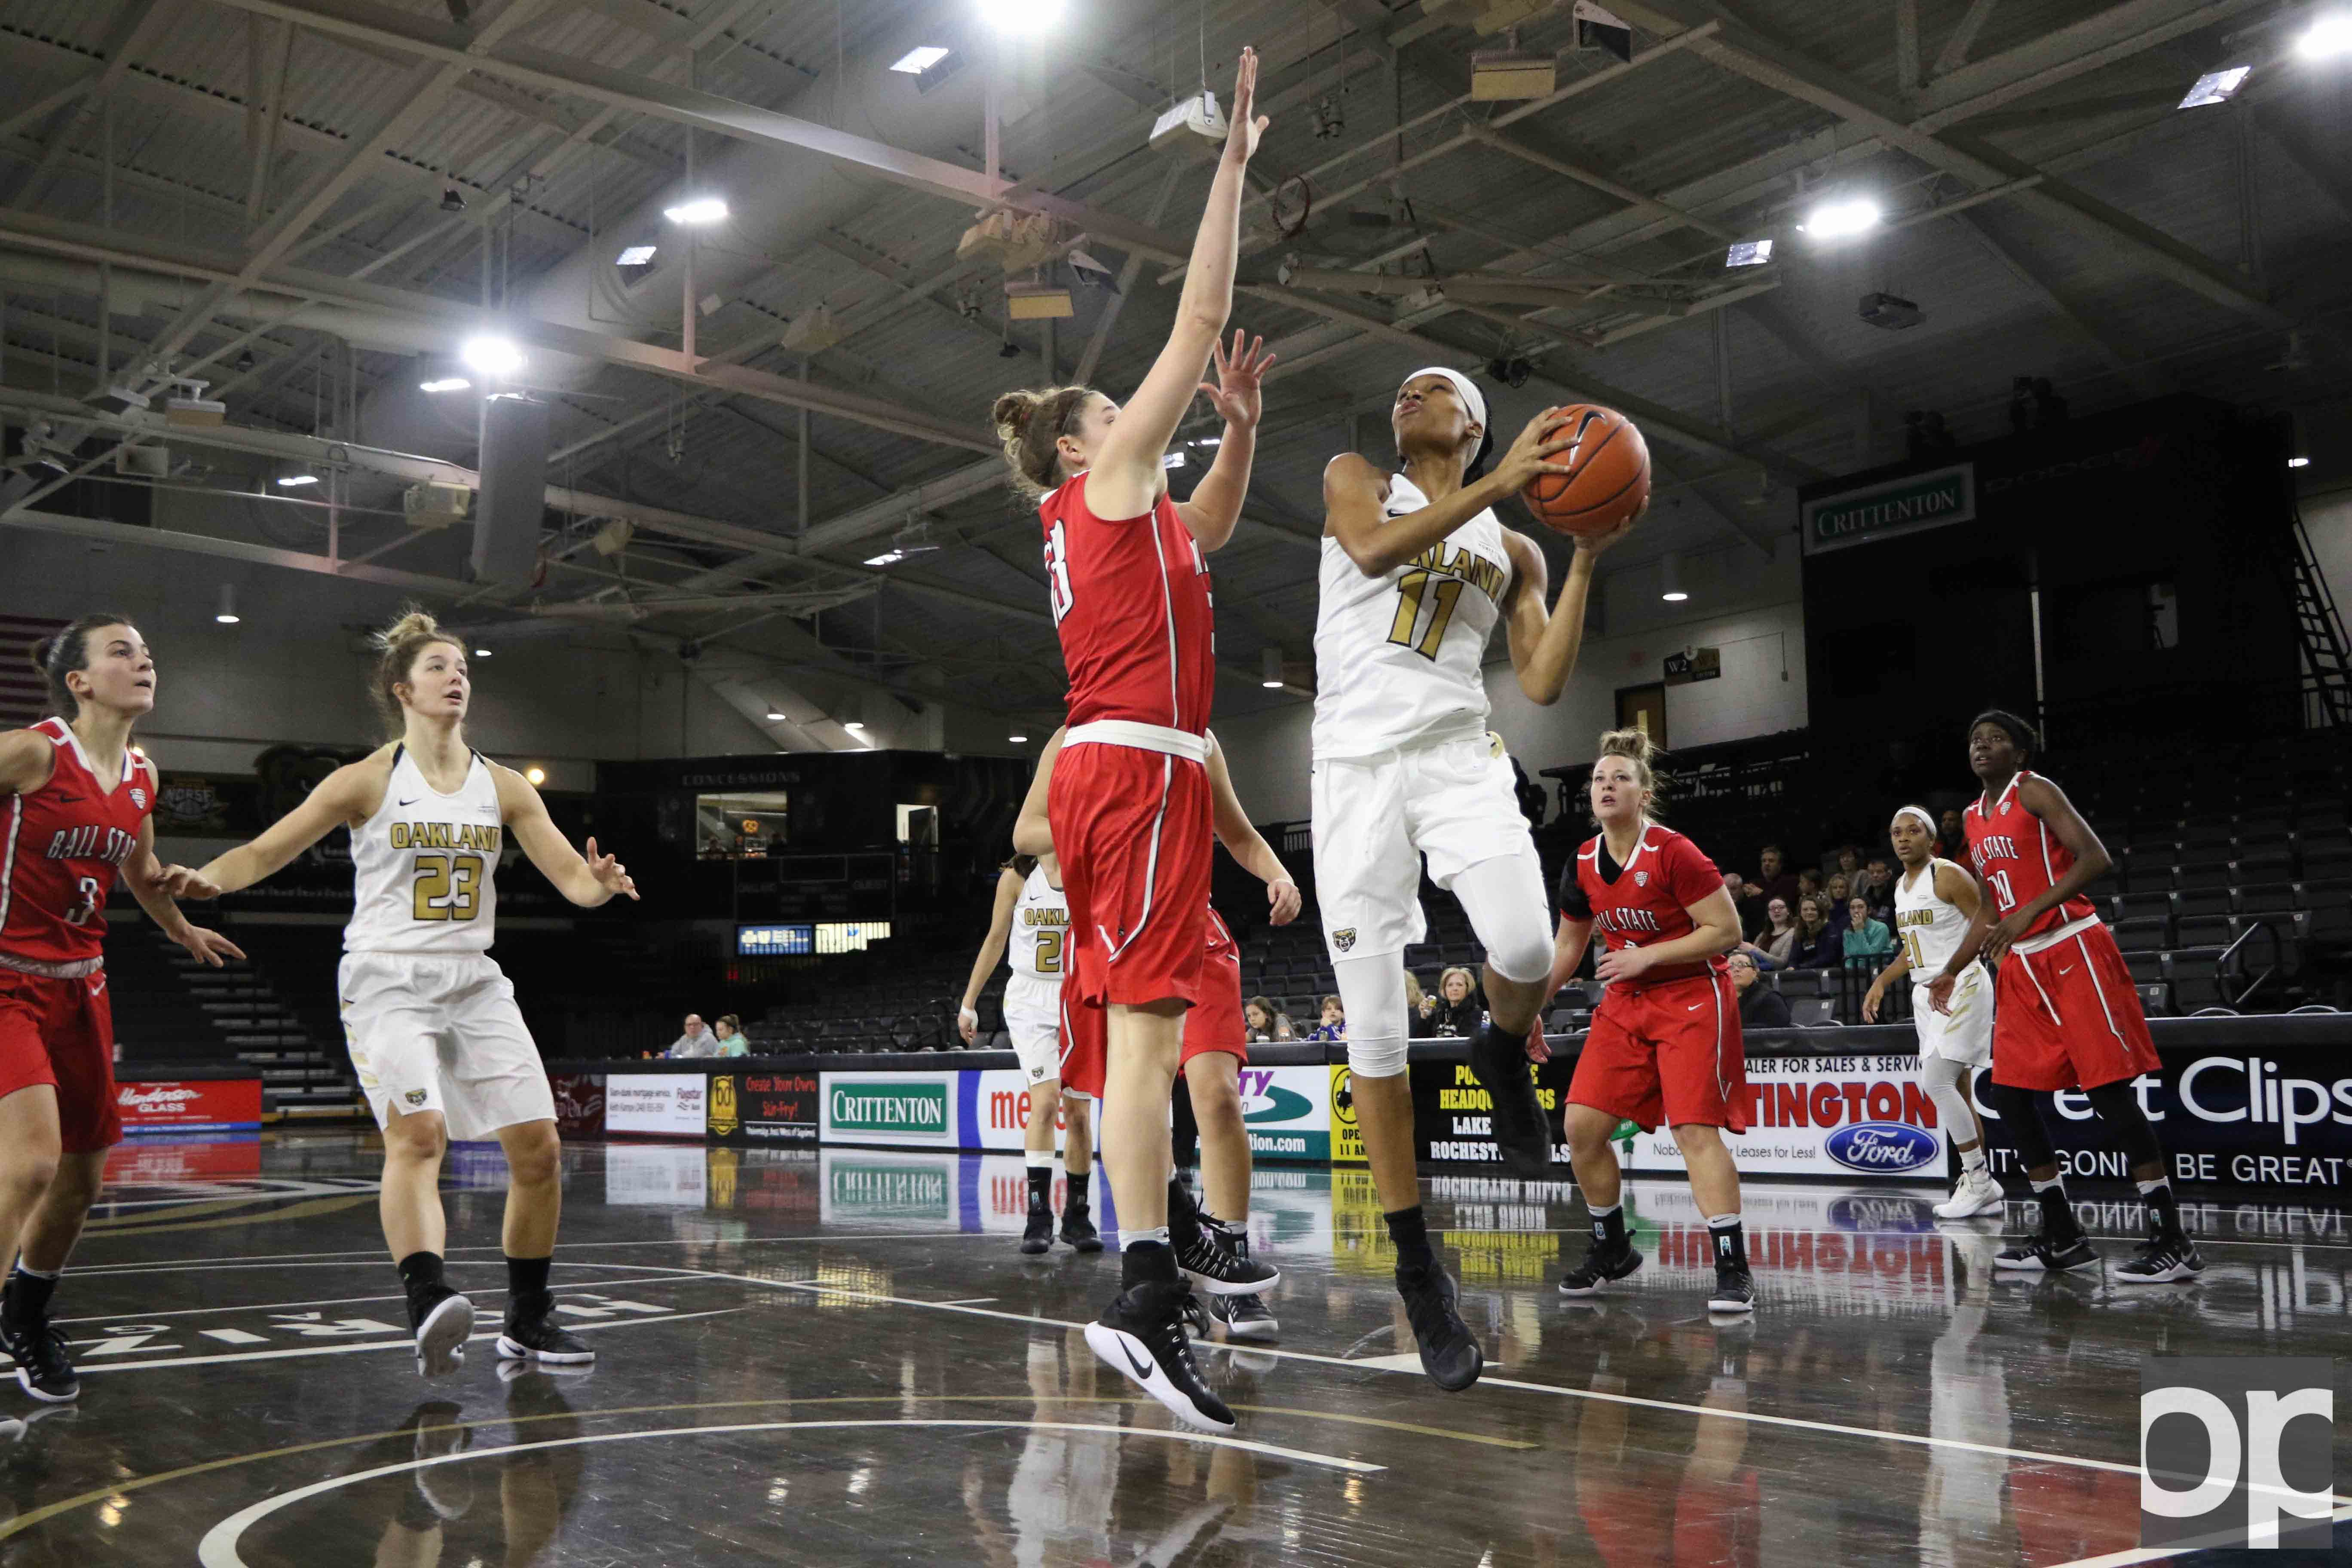 Oakland lost to Ball State 66-59 on Sunday, Dec. 11 at the O'rena. Leah Somerfield (23) scored 22 points to lead the team.